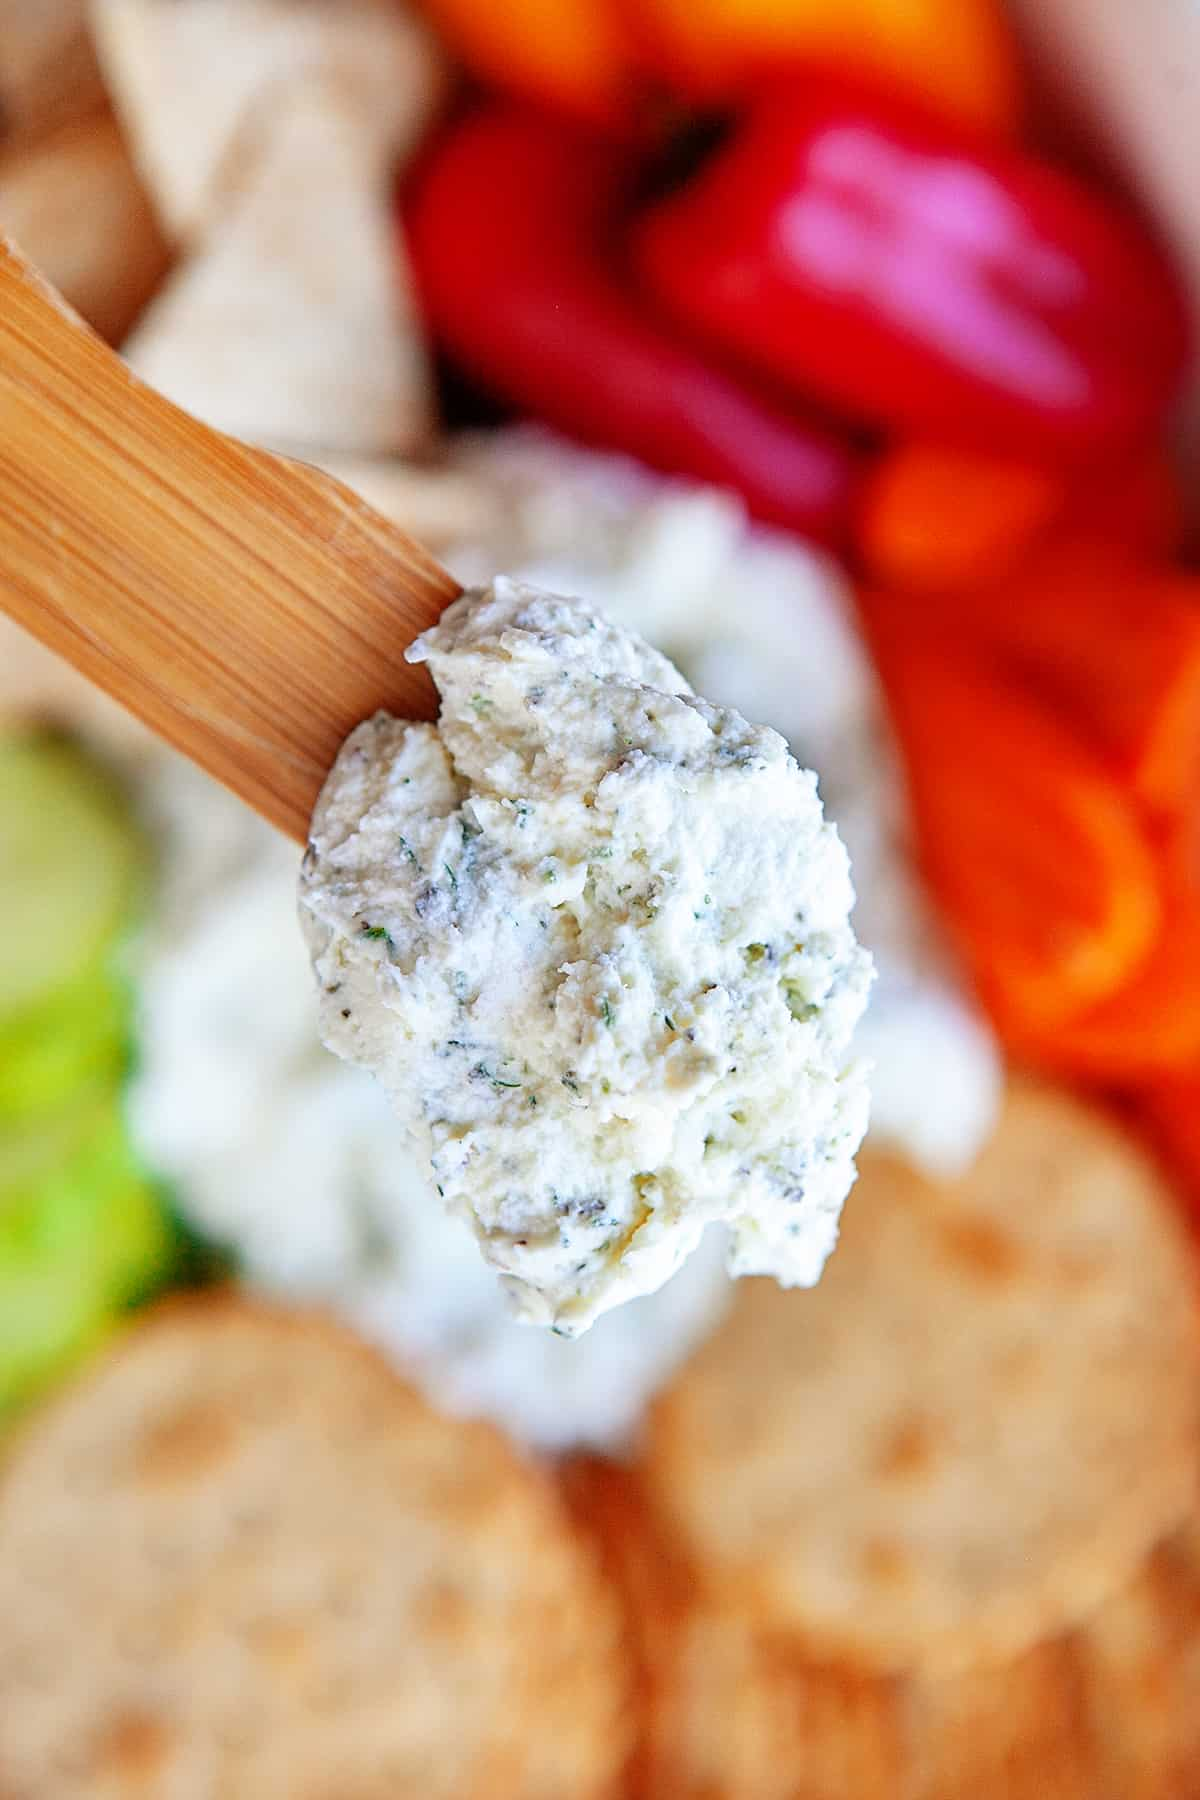 Close up of boursin cheese on a wooden spoon.